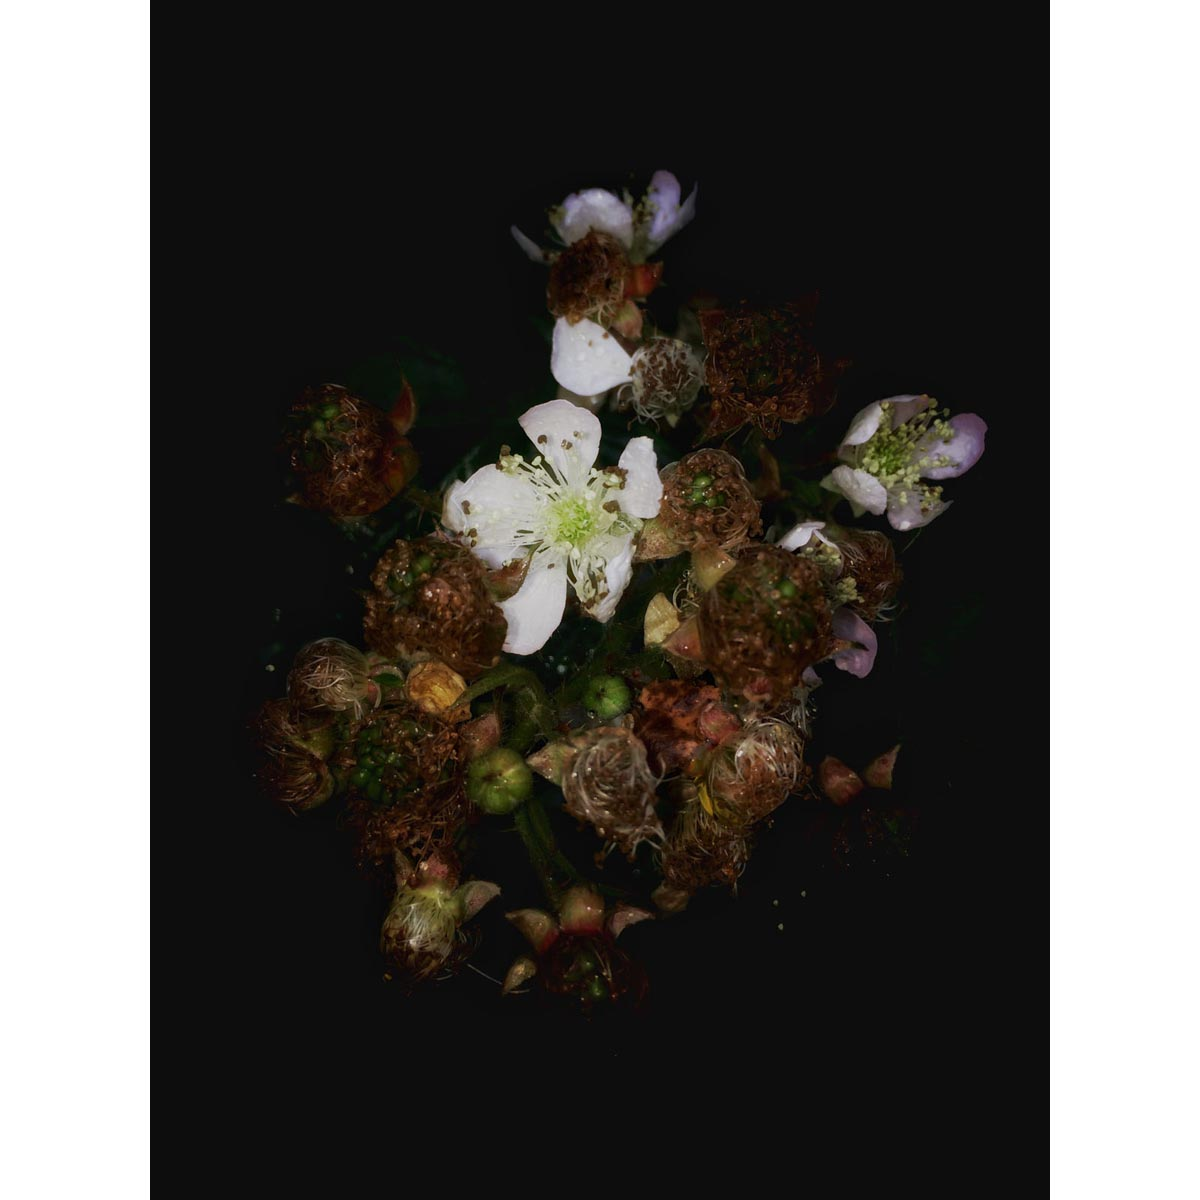 Contemporary fine art photograph of a blackberry blossom by Stephen S T Bradley - photo 1167